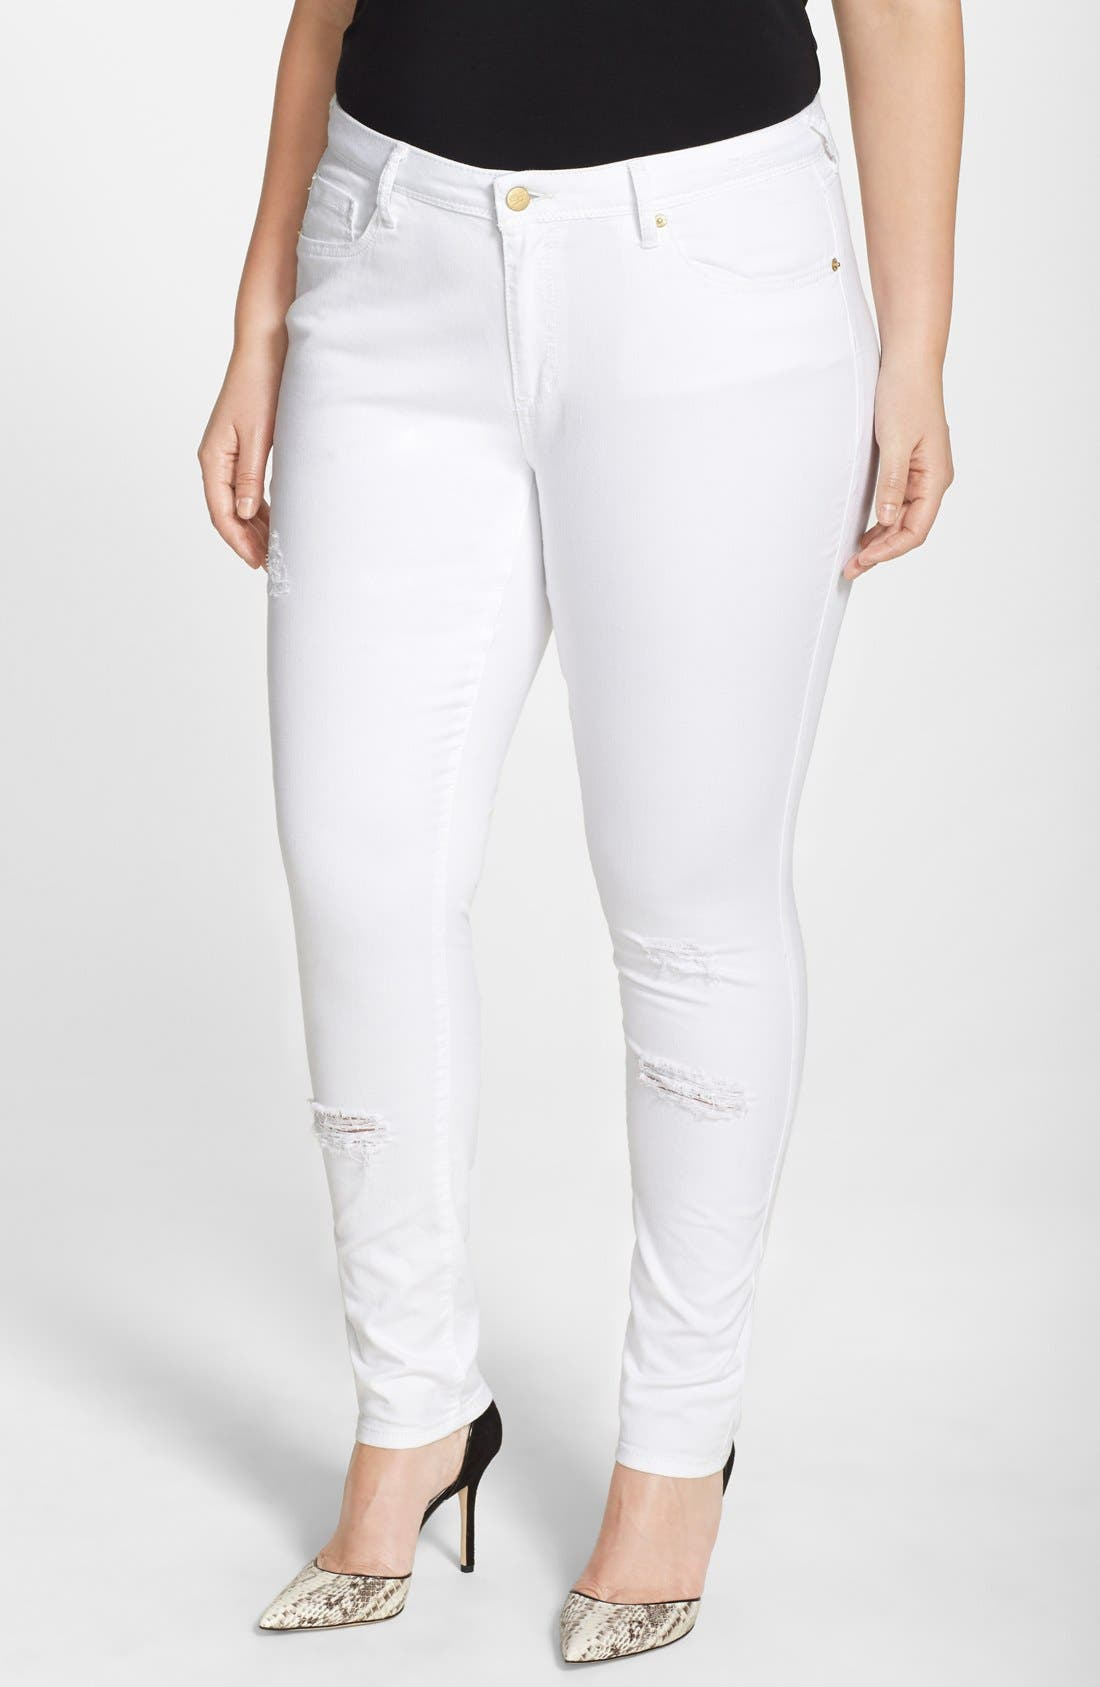 POETIC JUSTICE, 'Maya' Destroyed White Skinny Jeans, Main thumbnail 1, color, CASPER